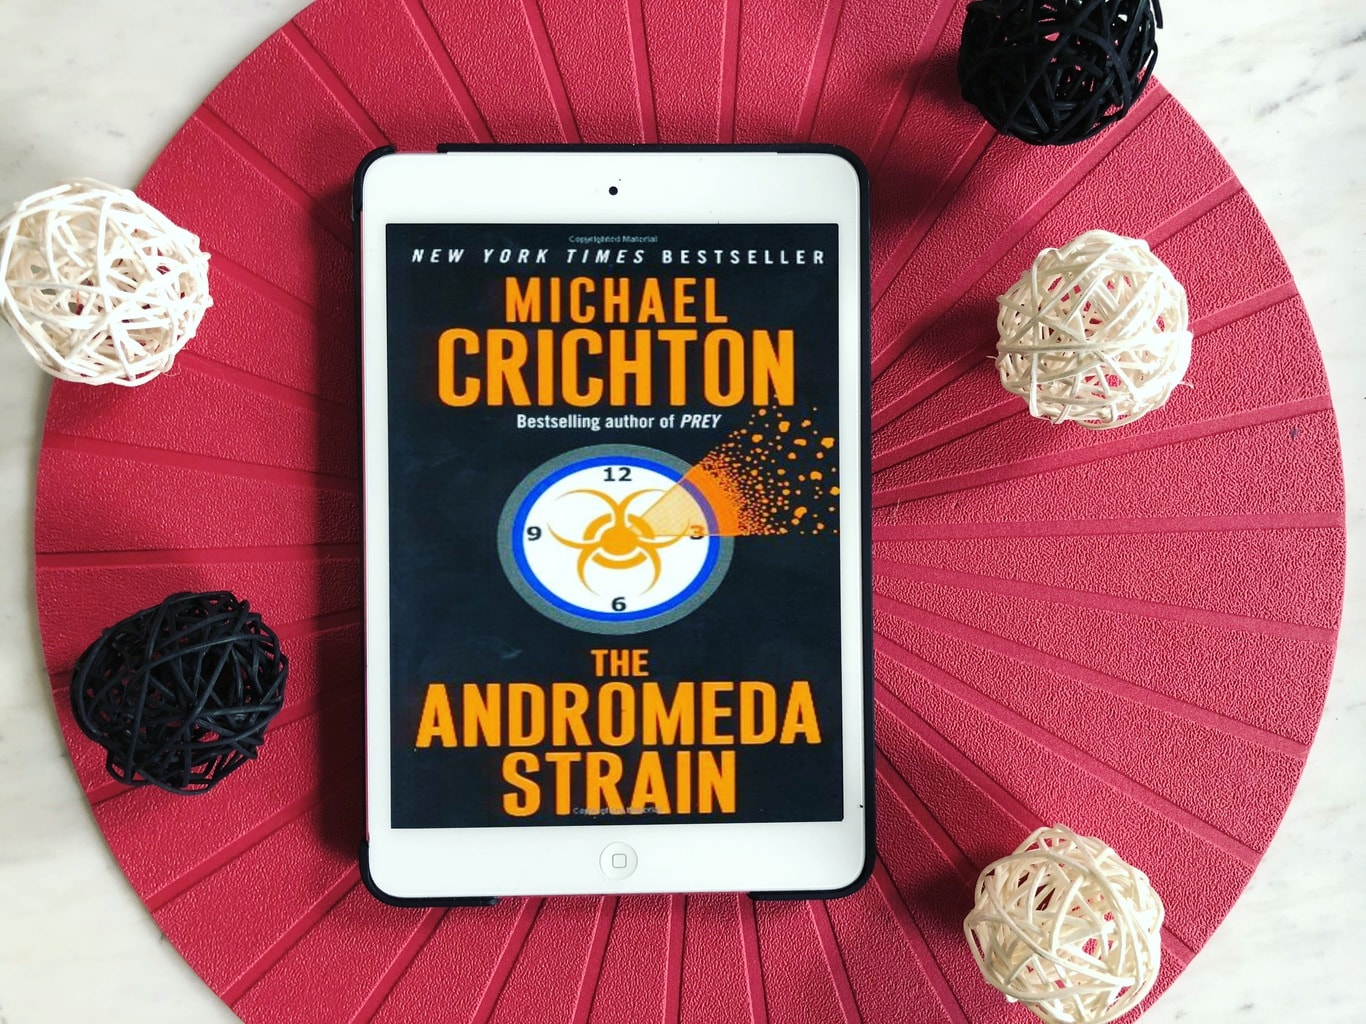 The Andromeda Strain: Why Can't I Remember That I Don't Like Medicine-Themed Books?!